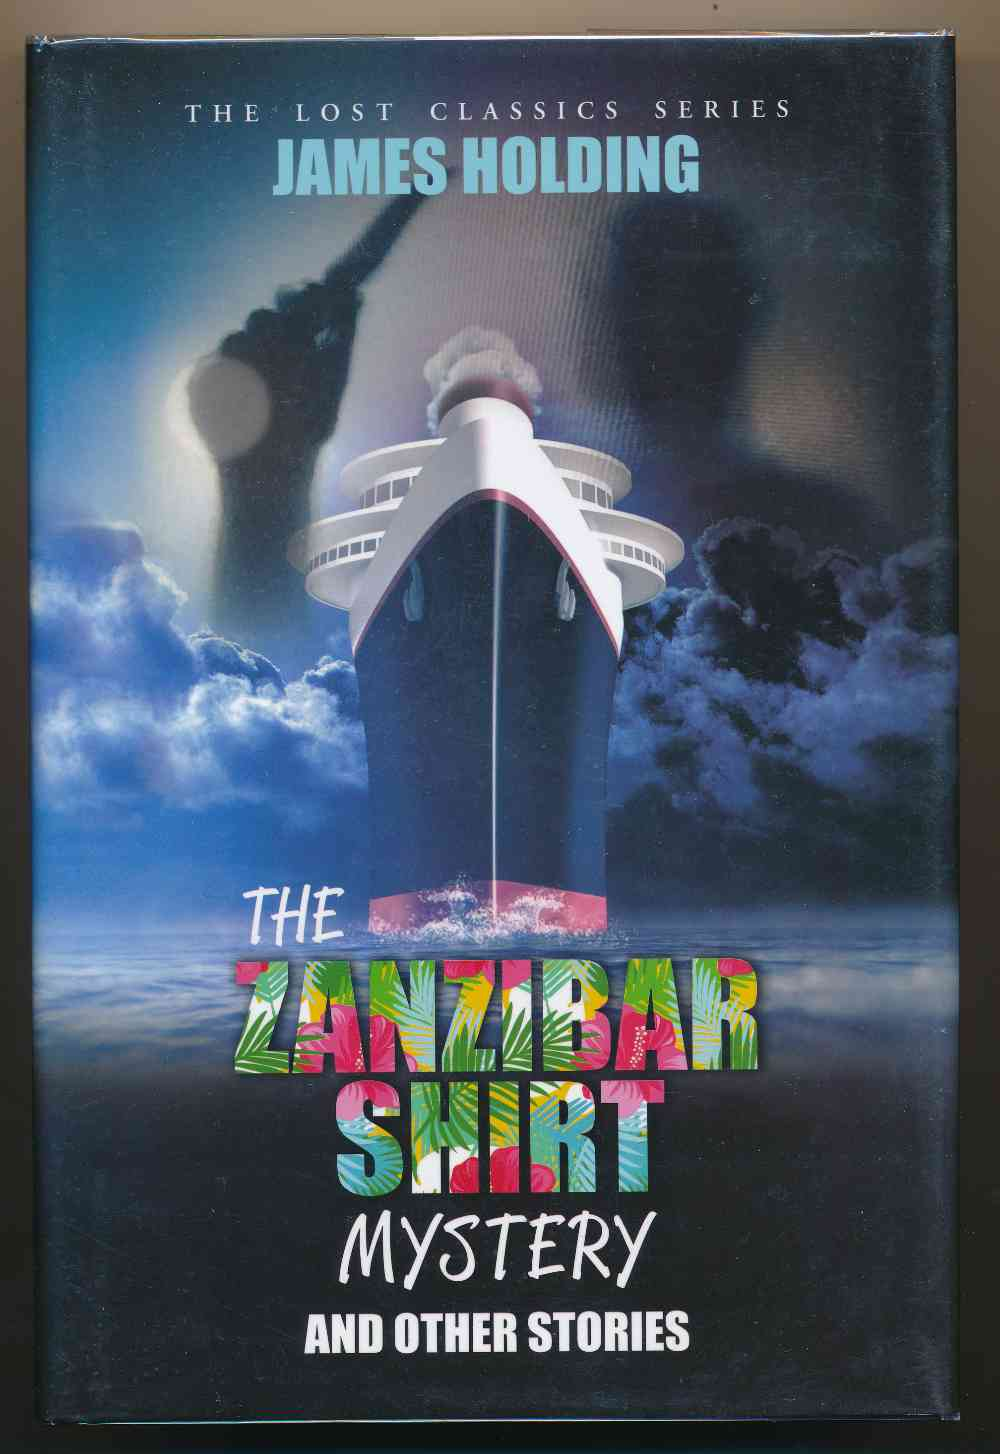 The Zanzibar shirt, and other stories